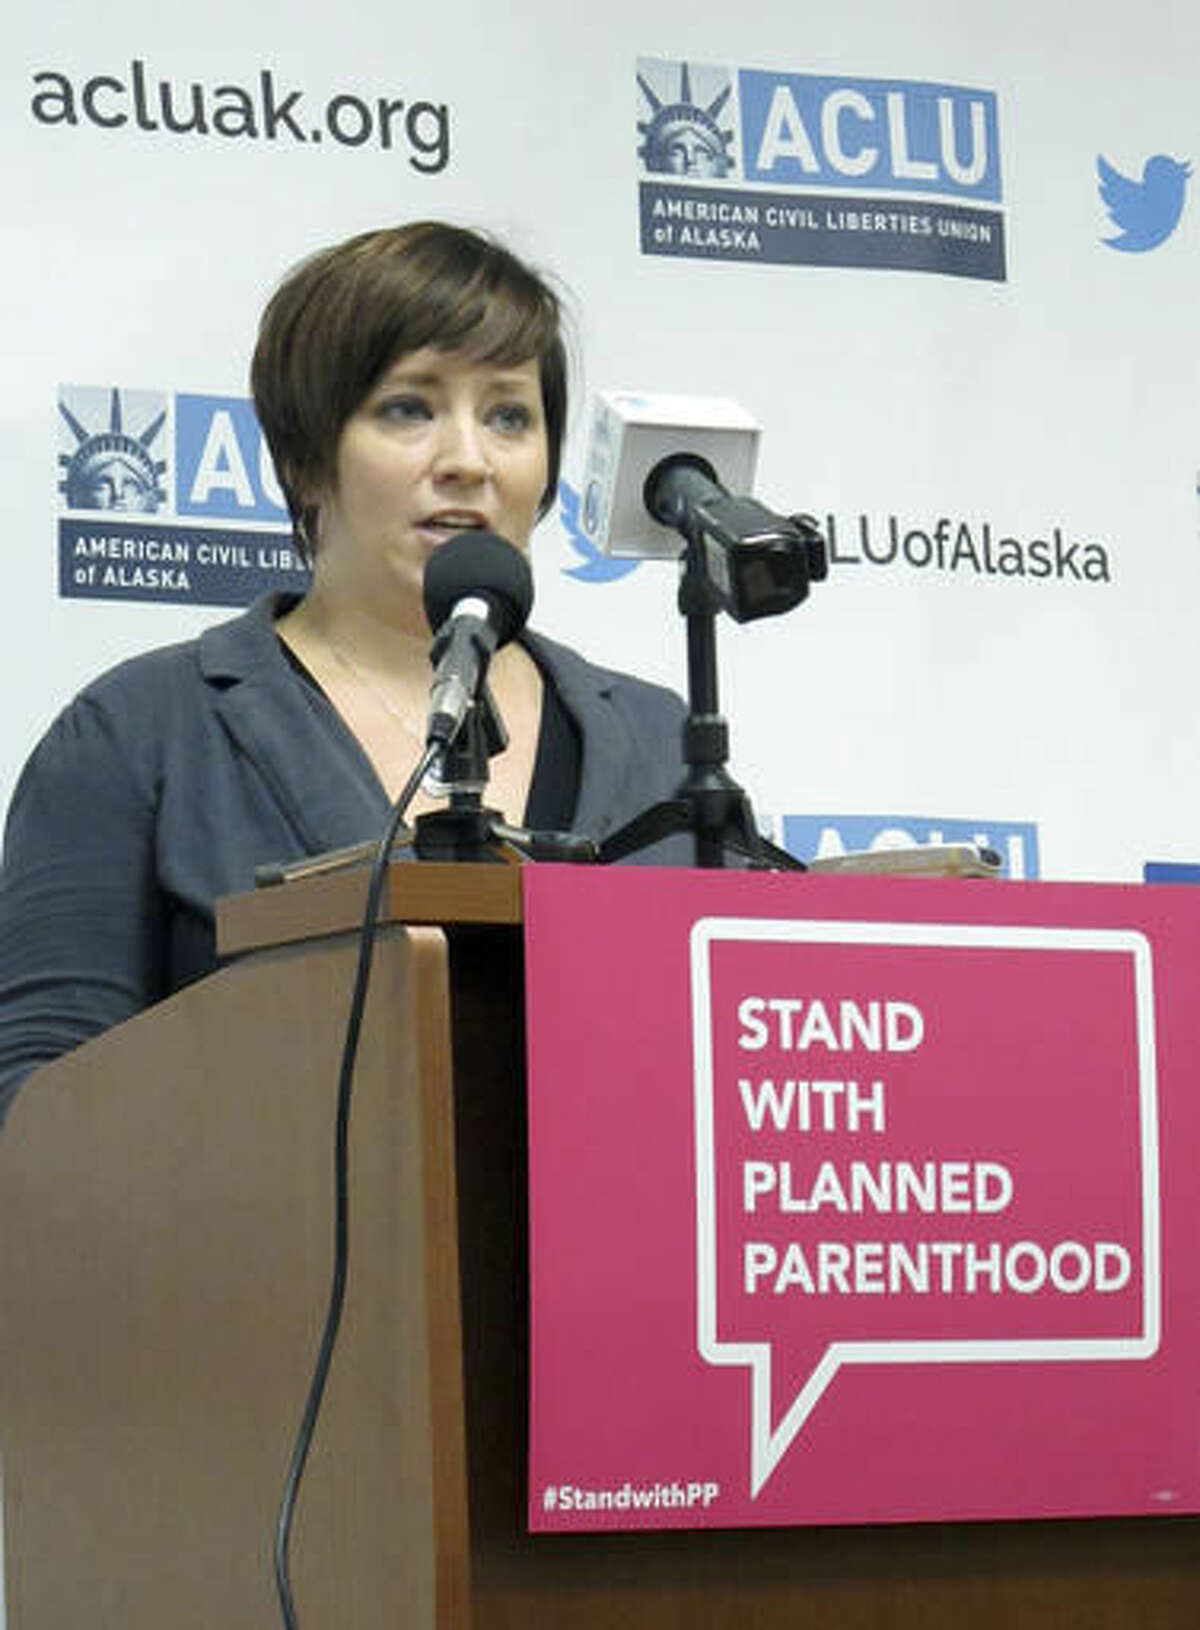 Jessica Cler, with Planned Parenthood, discusses a lawsuit filed against the state of Alaska to challenge abortion restrictions that plaintiffs say effectively prevent outpatient health facilities in the state from providing second-trimester abortions during a news conference Wednesday, Nov. 30, 2016, in Anchorage, Alaska. Planned Parenthood and its allies filed lawsuits in Alaska, North Carolina and Missouri Wednesday to challenge laws they view as unconstitutional restrictions on abortion. (AP Photo/Rachel D'Oro)